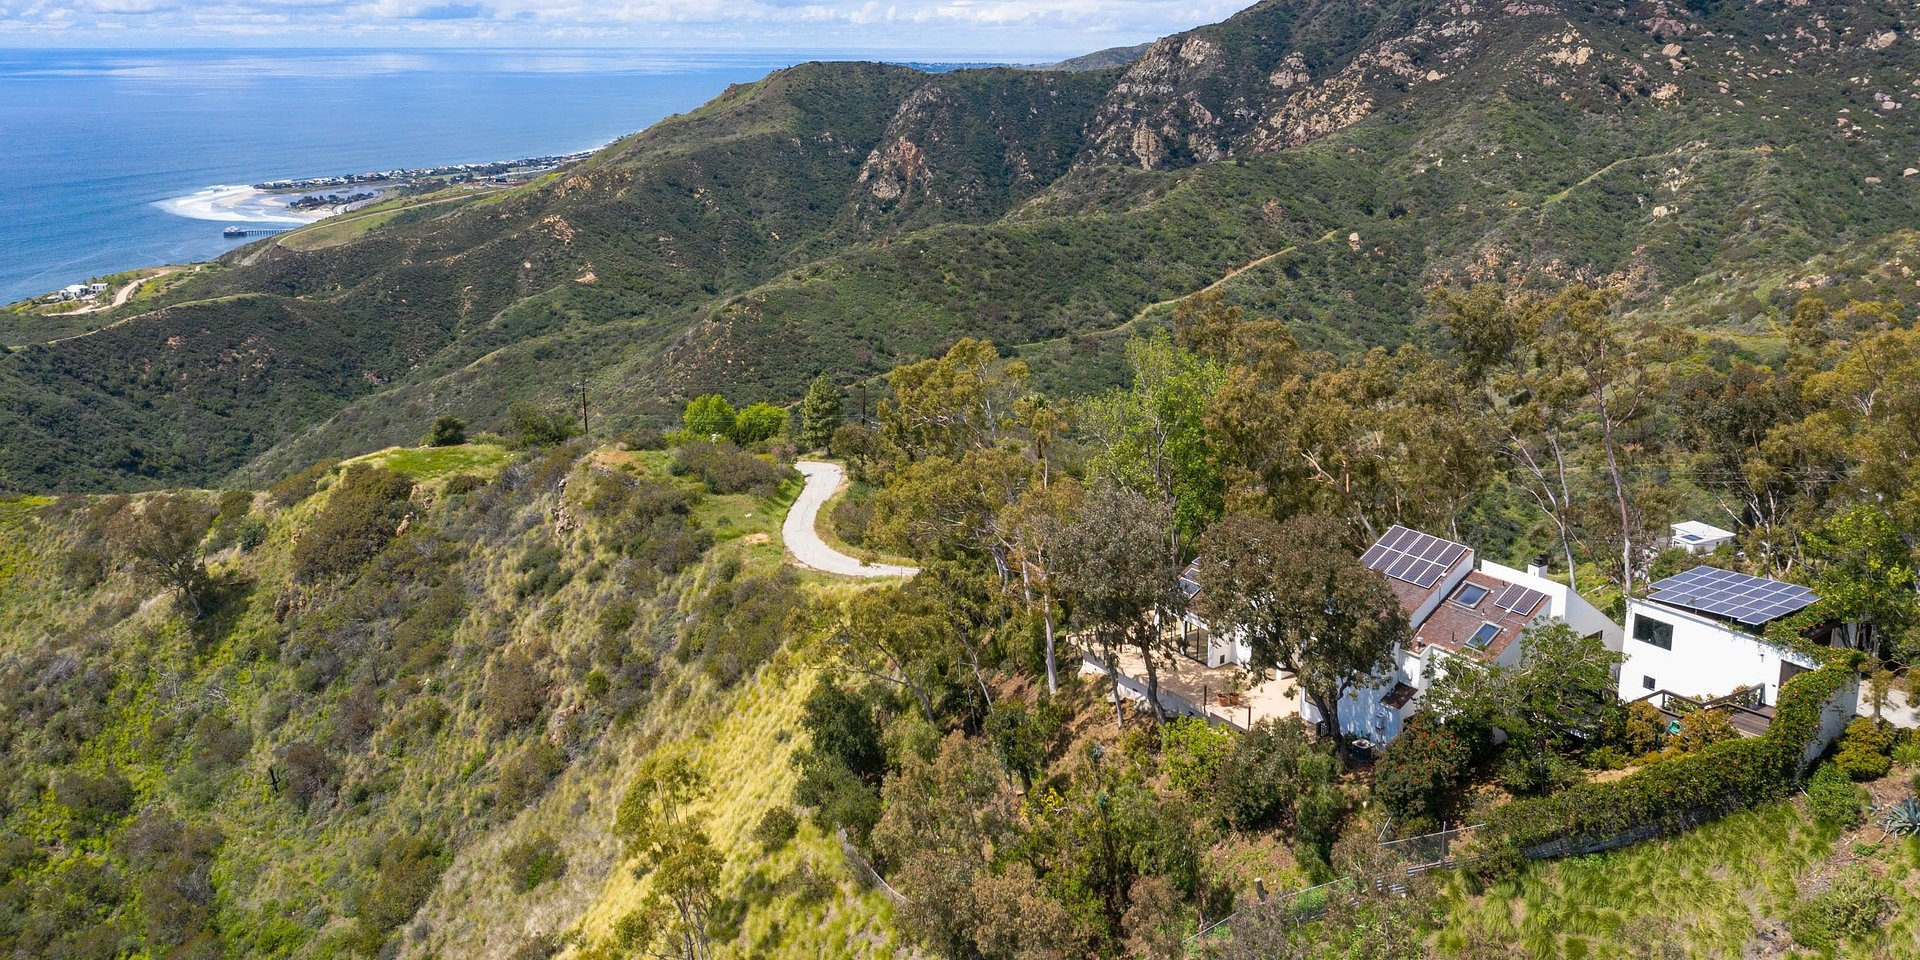 Coldwell Banker Realty Lists Scenic Malibu Property with Extraordinary 280-degree Ocean and Coastal Views for $2.995 Million